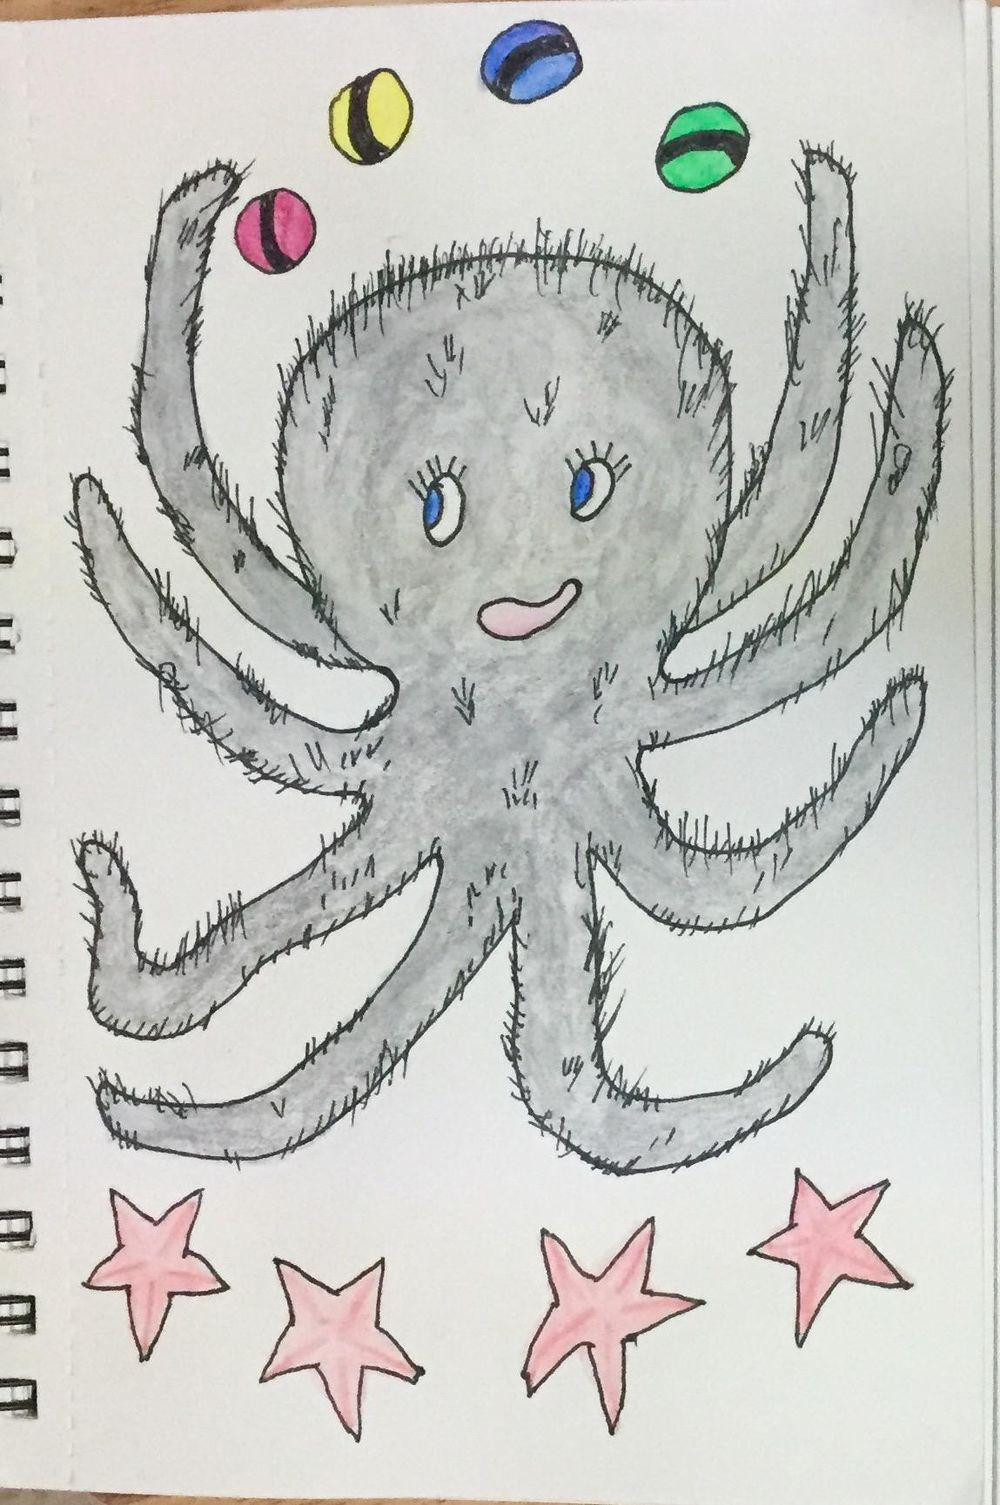 Harriett the Hairy Octopus (who juggles) - image 6 - student project